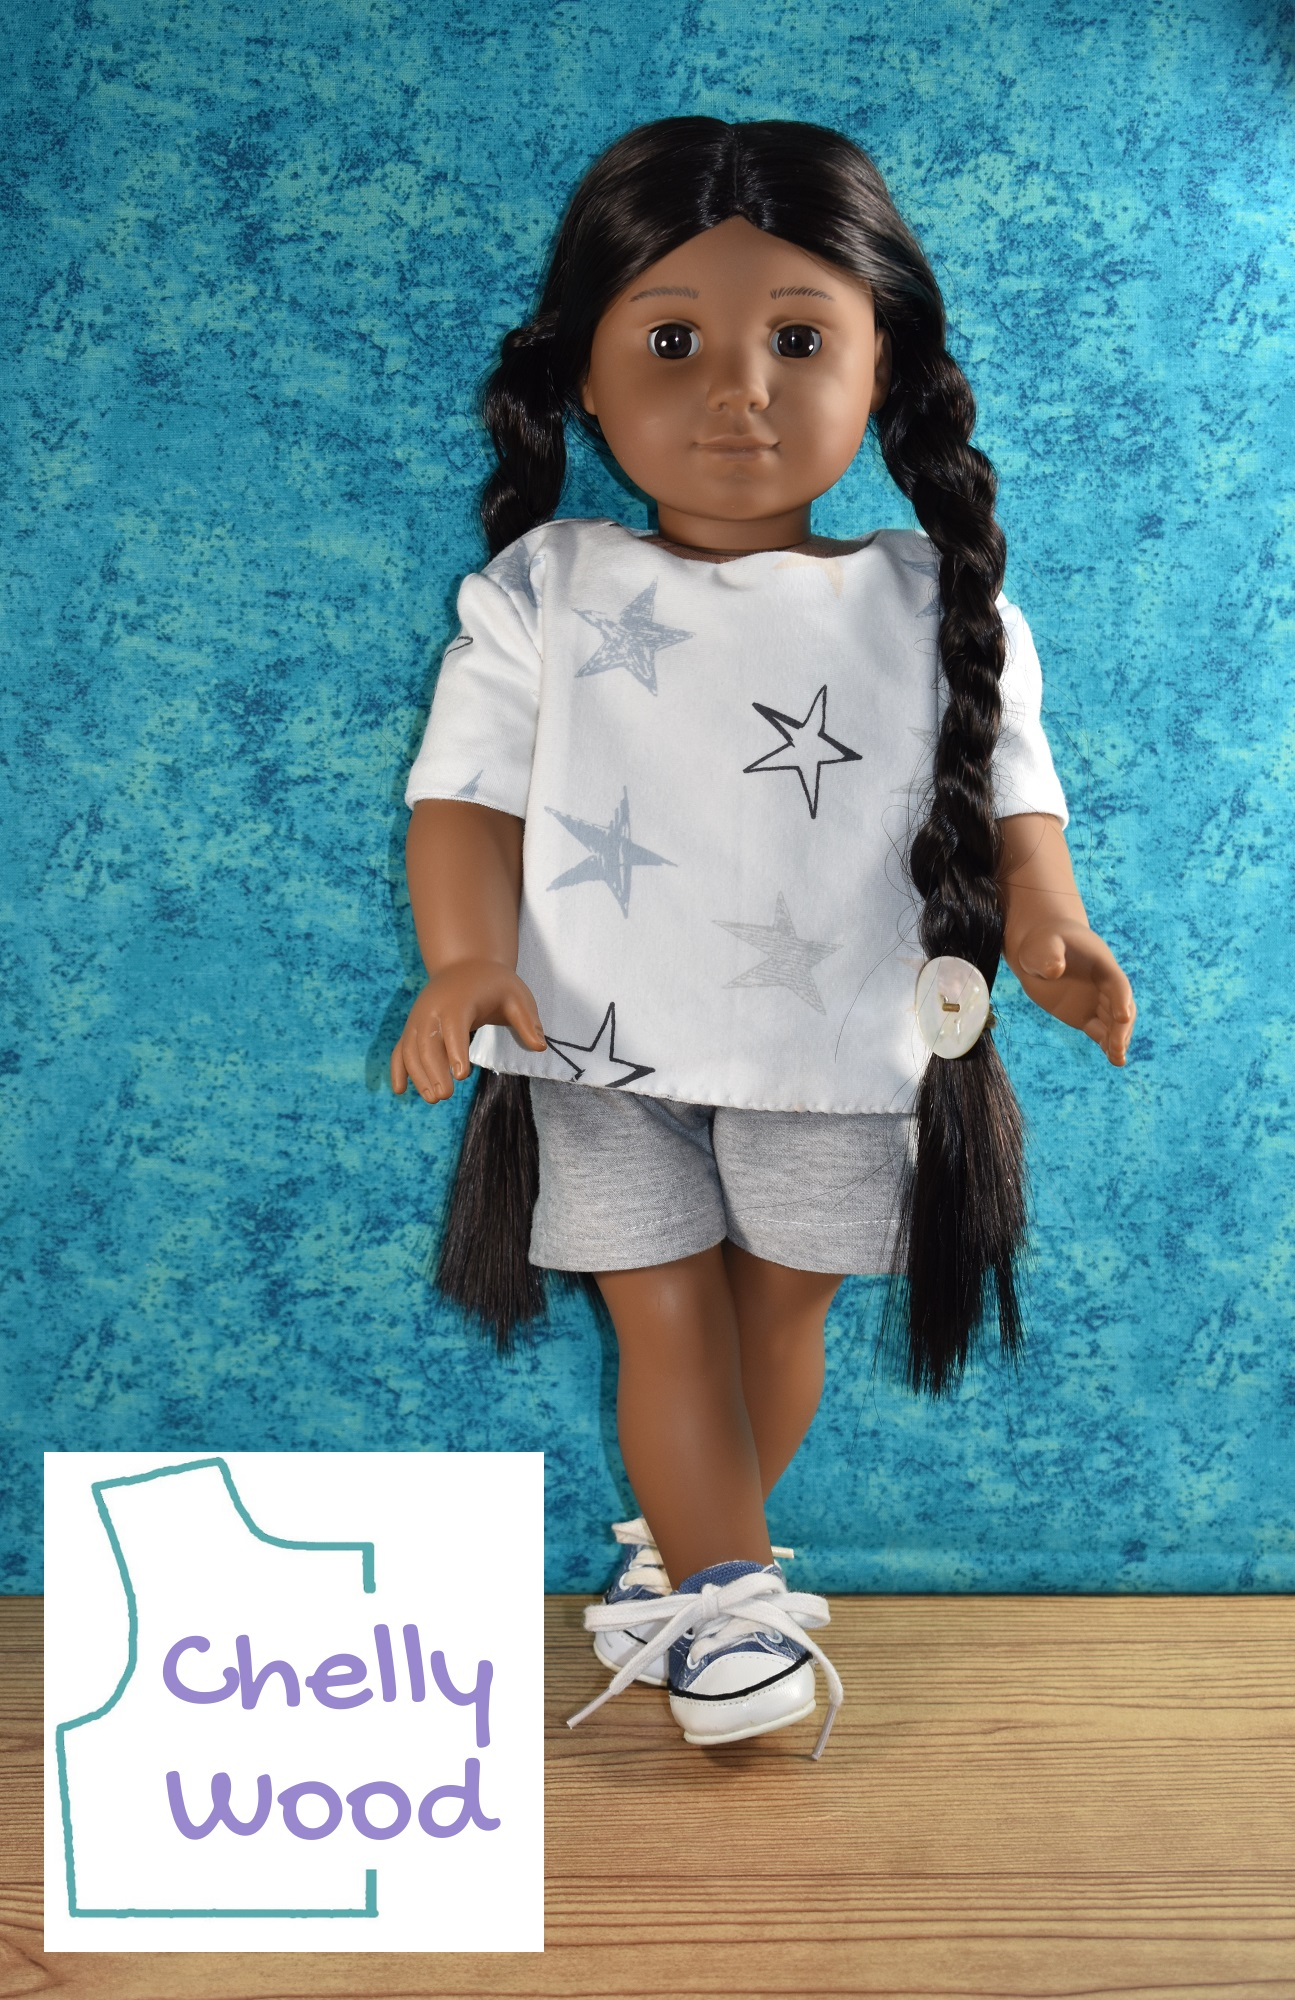 American Girl Kaya doll stands with her feet crossed at the ankles. She wears a handmade tee shirt with a blue and grey star pattern on the jersey fabric it is made with. Her shorts are made of grey jersey fabric to nicely coordinate with the grey stars on her white shirt. Would you like to make this outfit for your 18 inch dolls? Please visit ChellyWood.com for the free printable PDF sewing patterns.